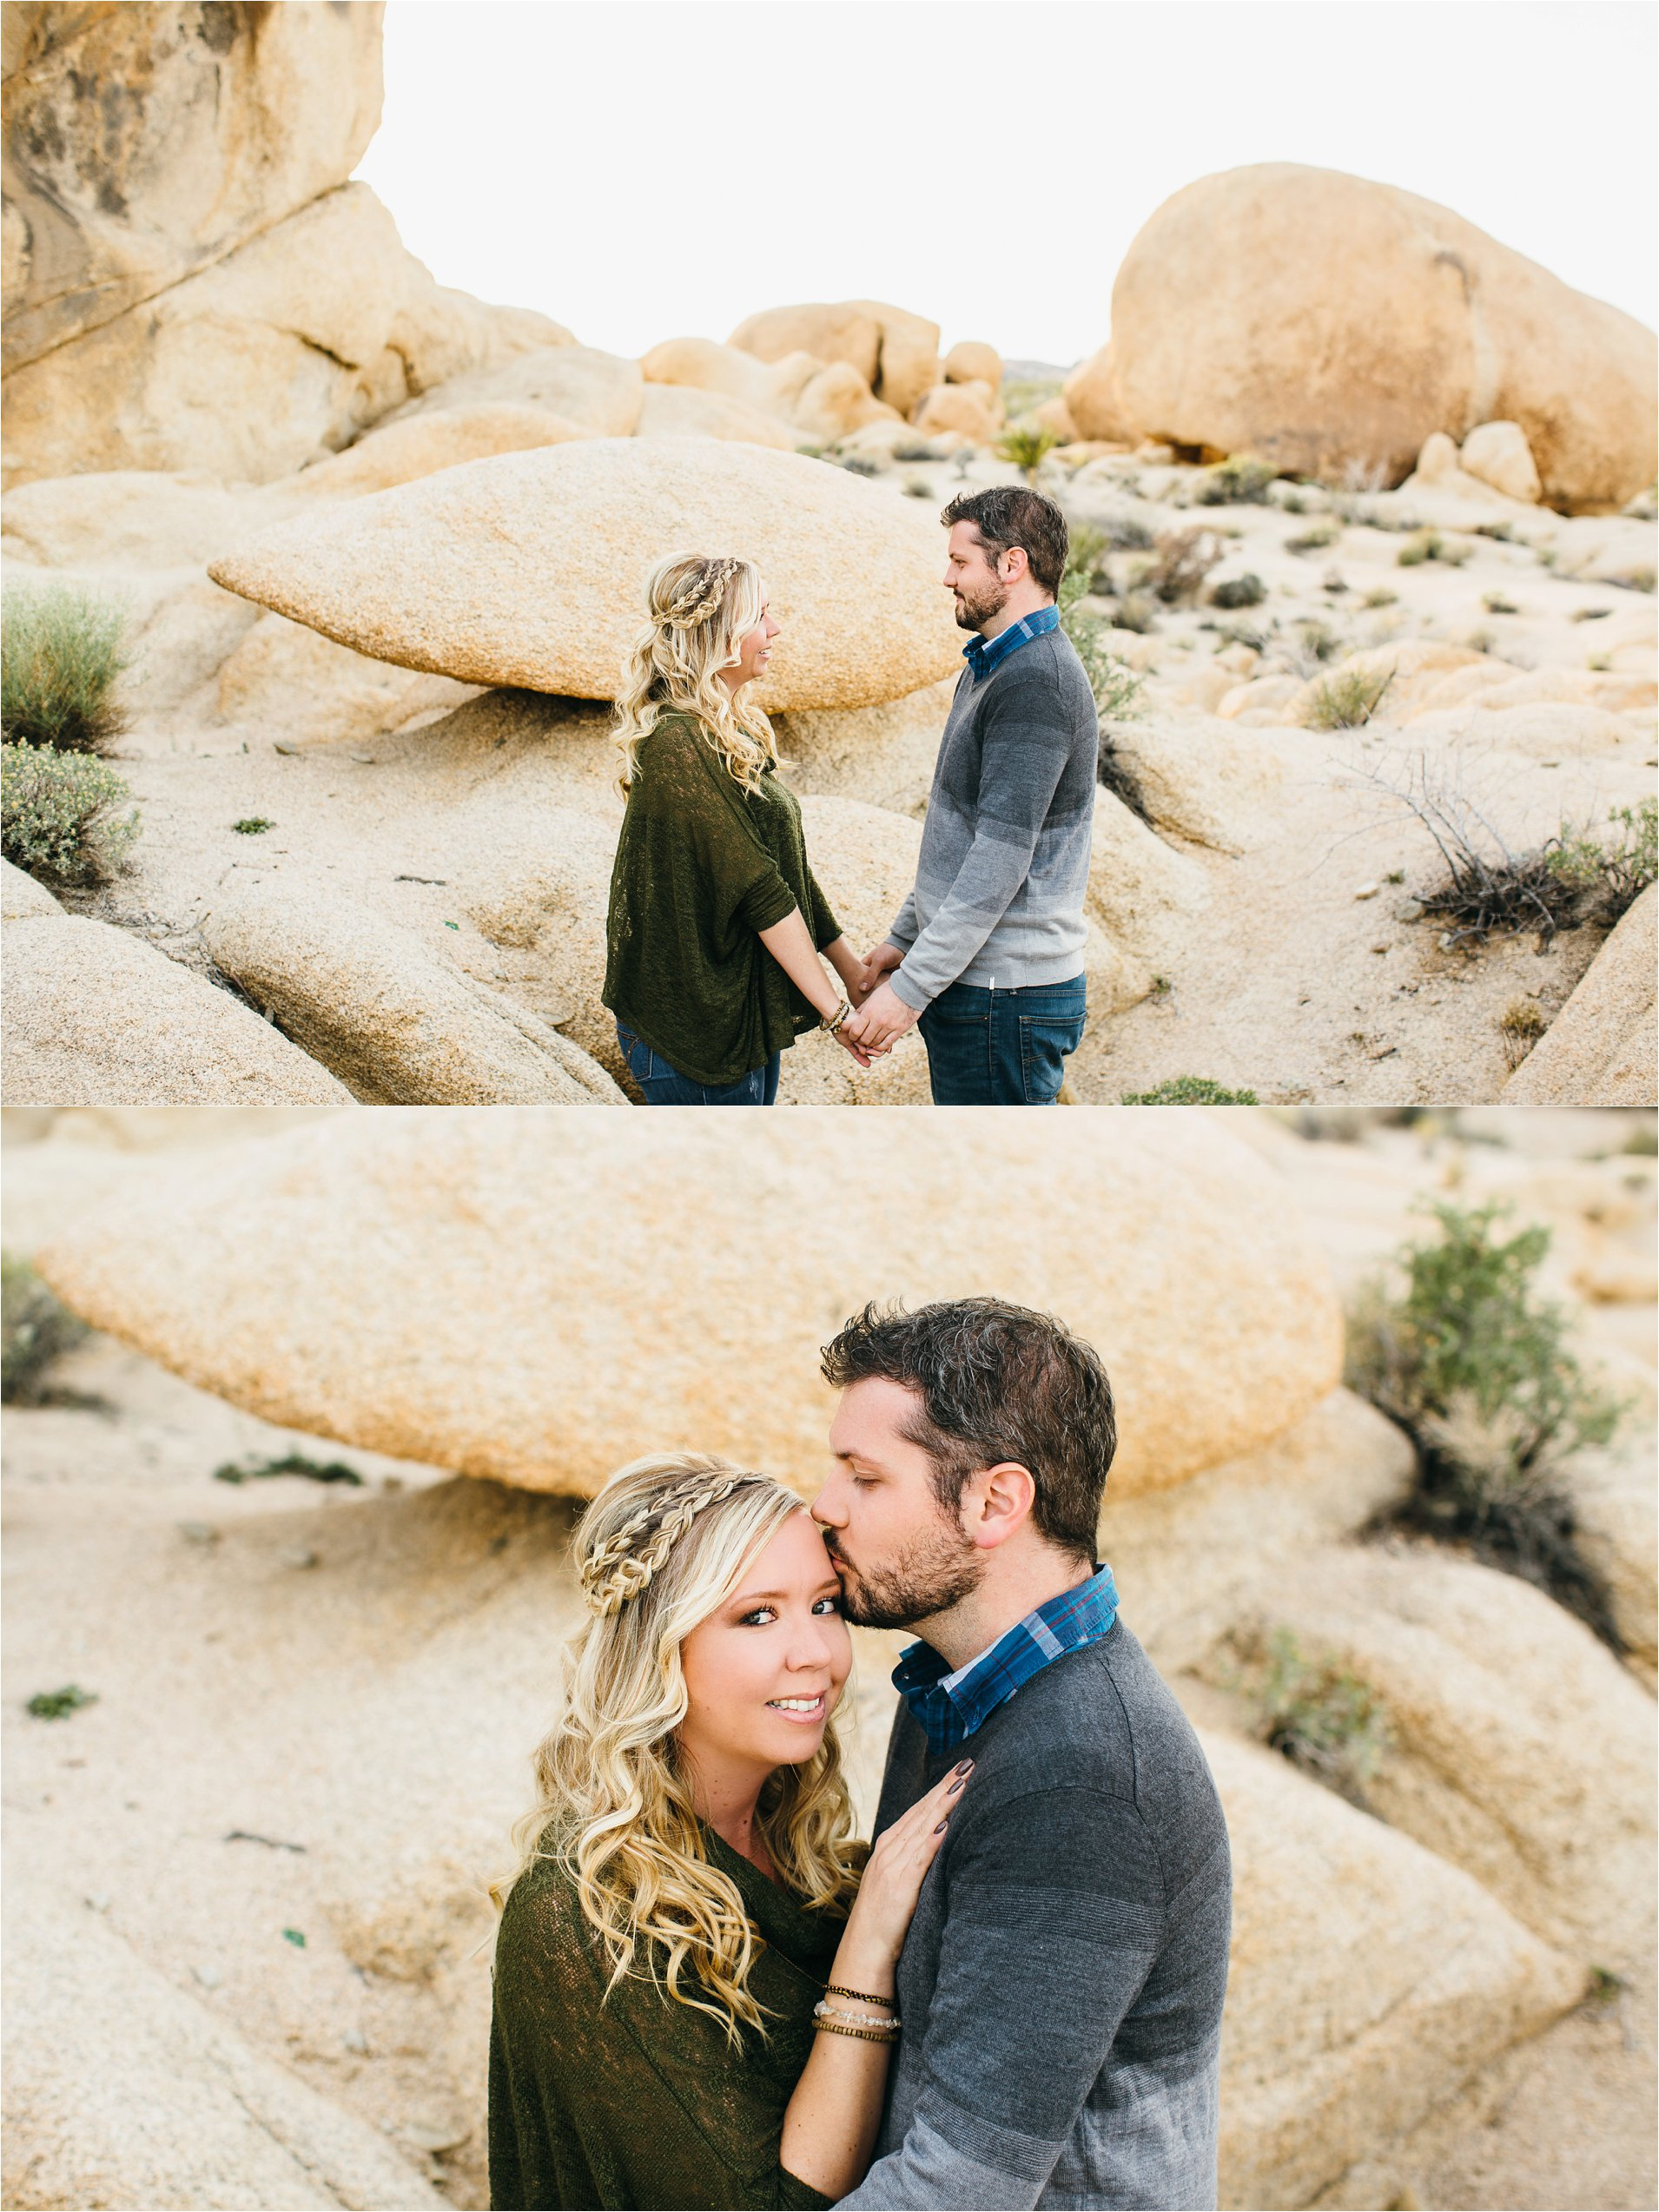 Desert Engagement Session - http://brittneyhannonphotography